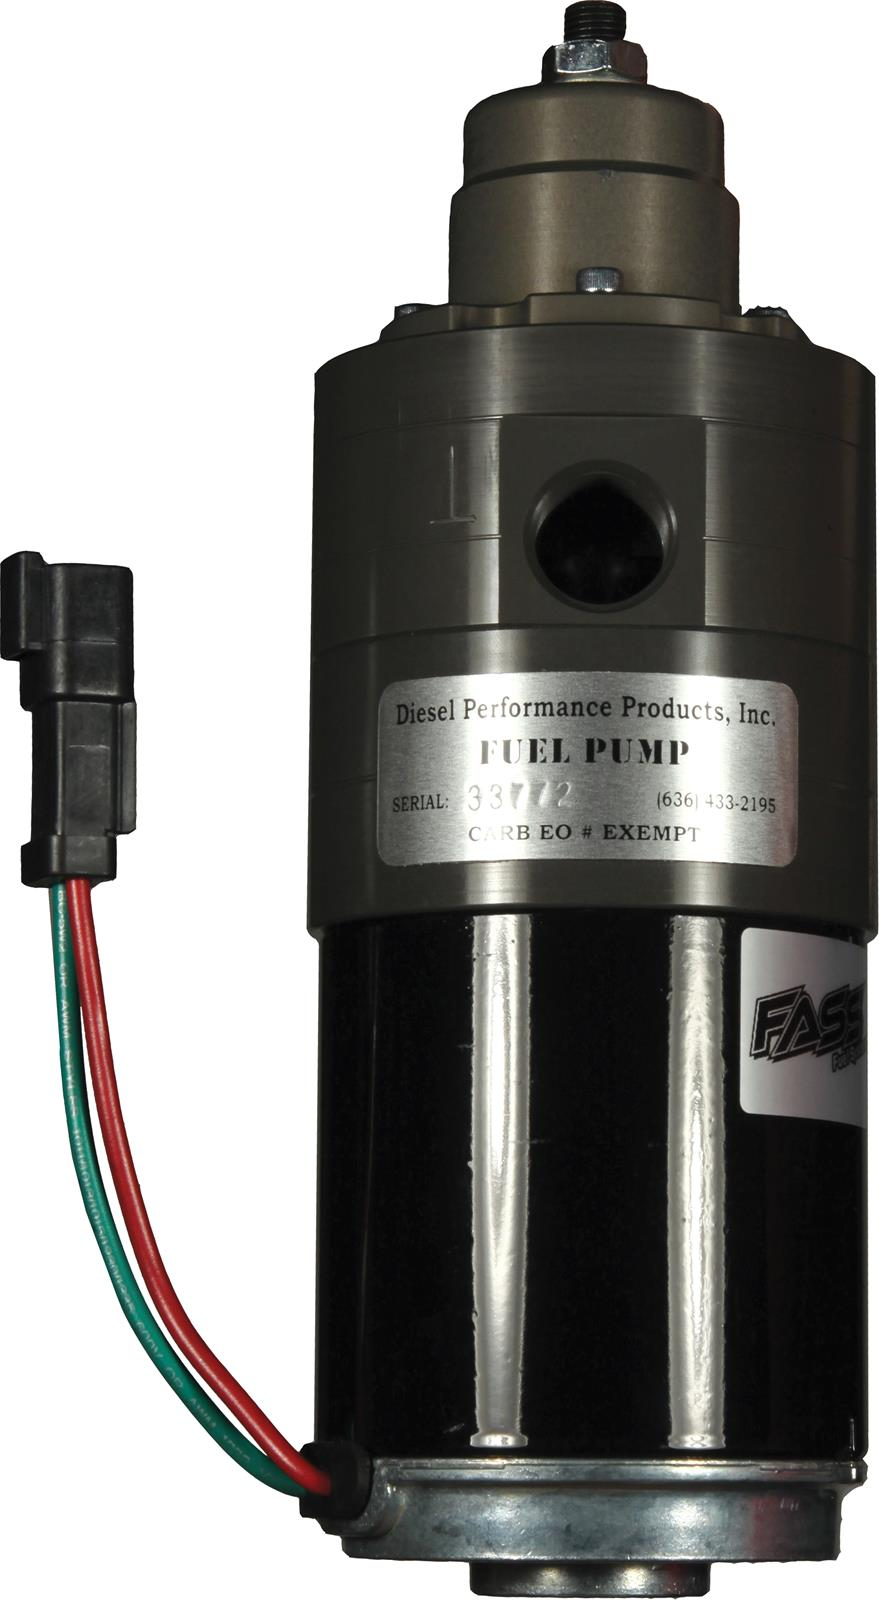 Fass Fuel Pump >> Fass Fuel Systems Hd Series Replacement Pumps Rpfa 1002